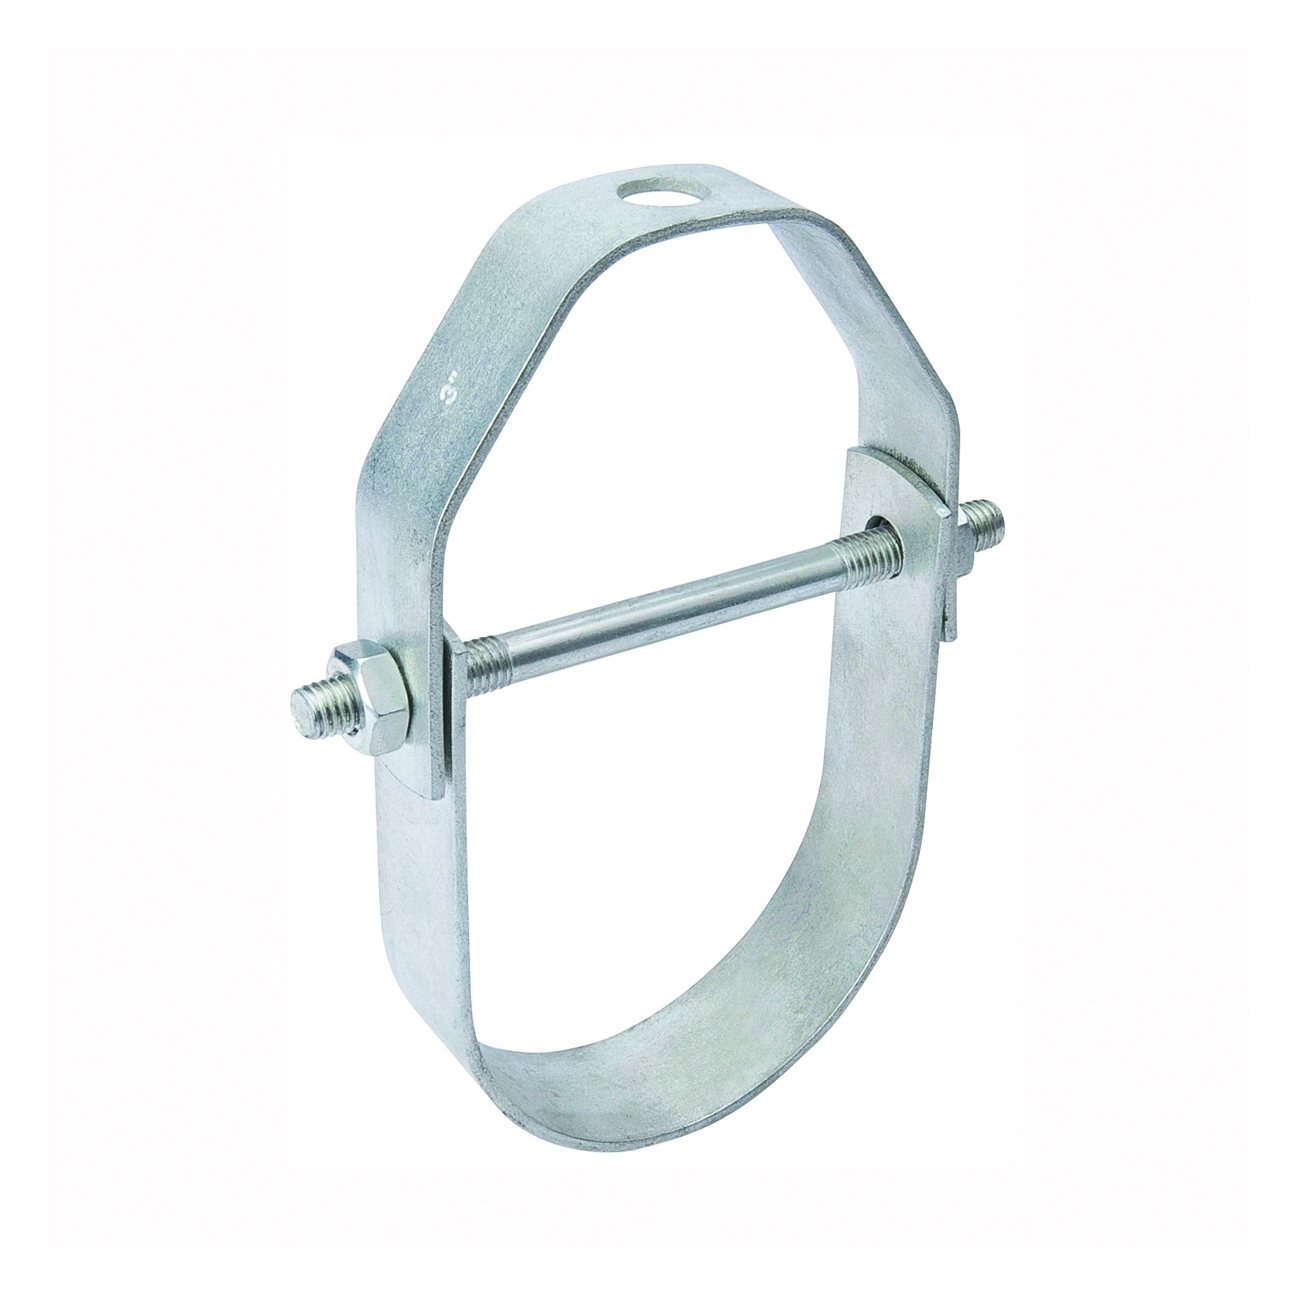 Picture of B & K G65-125HC Pipe Hanger, 1-1/4 in Opening, Galvanized Steel, 10